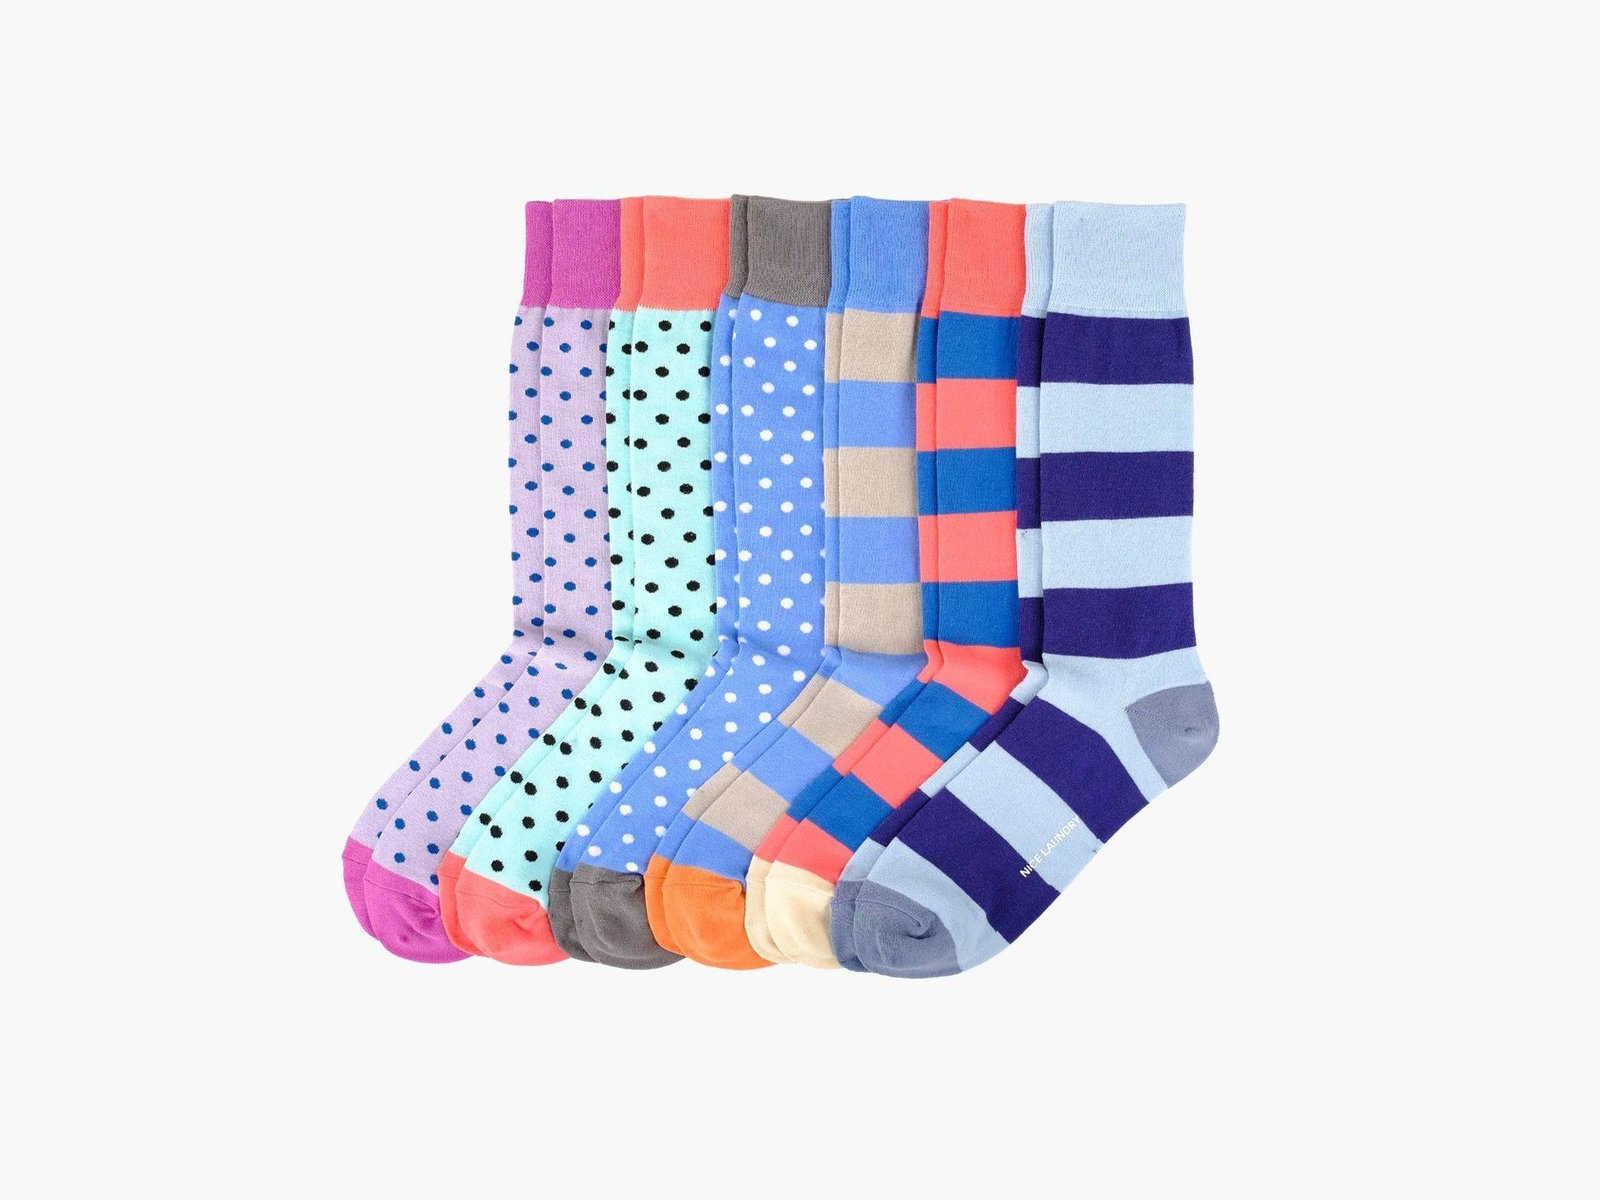 Probably one of the few designs that would make anyone happy to see socks in their Christmas stocking. Nice Laundry Dreamer VI socks, $49  Photo 7 of 12 in Stocking Stuffers That Will Please the Modernists in Your Life